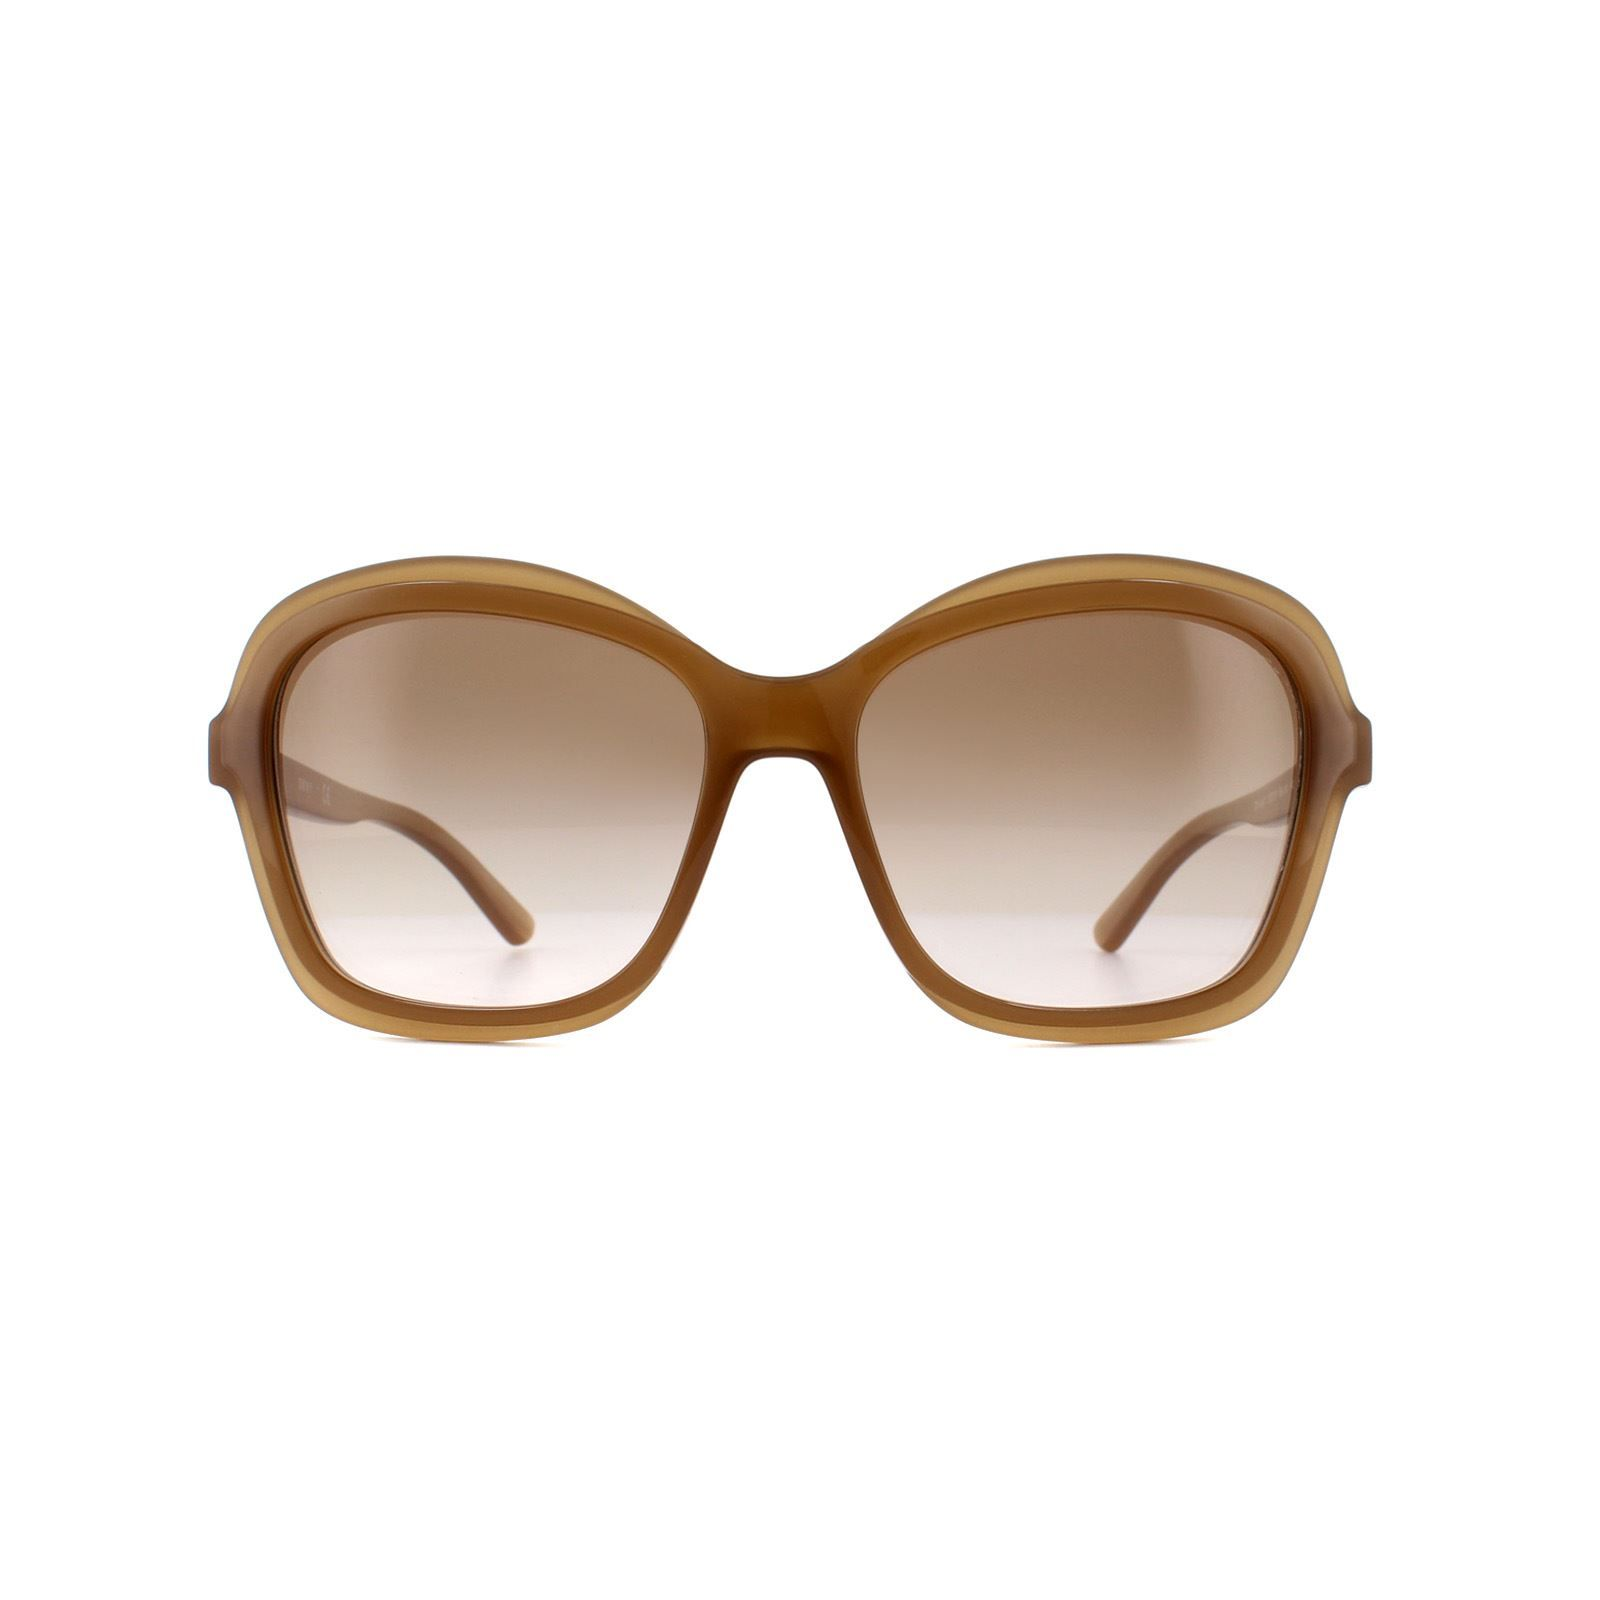 DKNY Sunglasses DY4147 372713 Milky Taupe Brown Blush Gradient